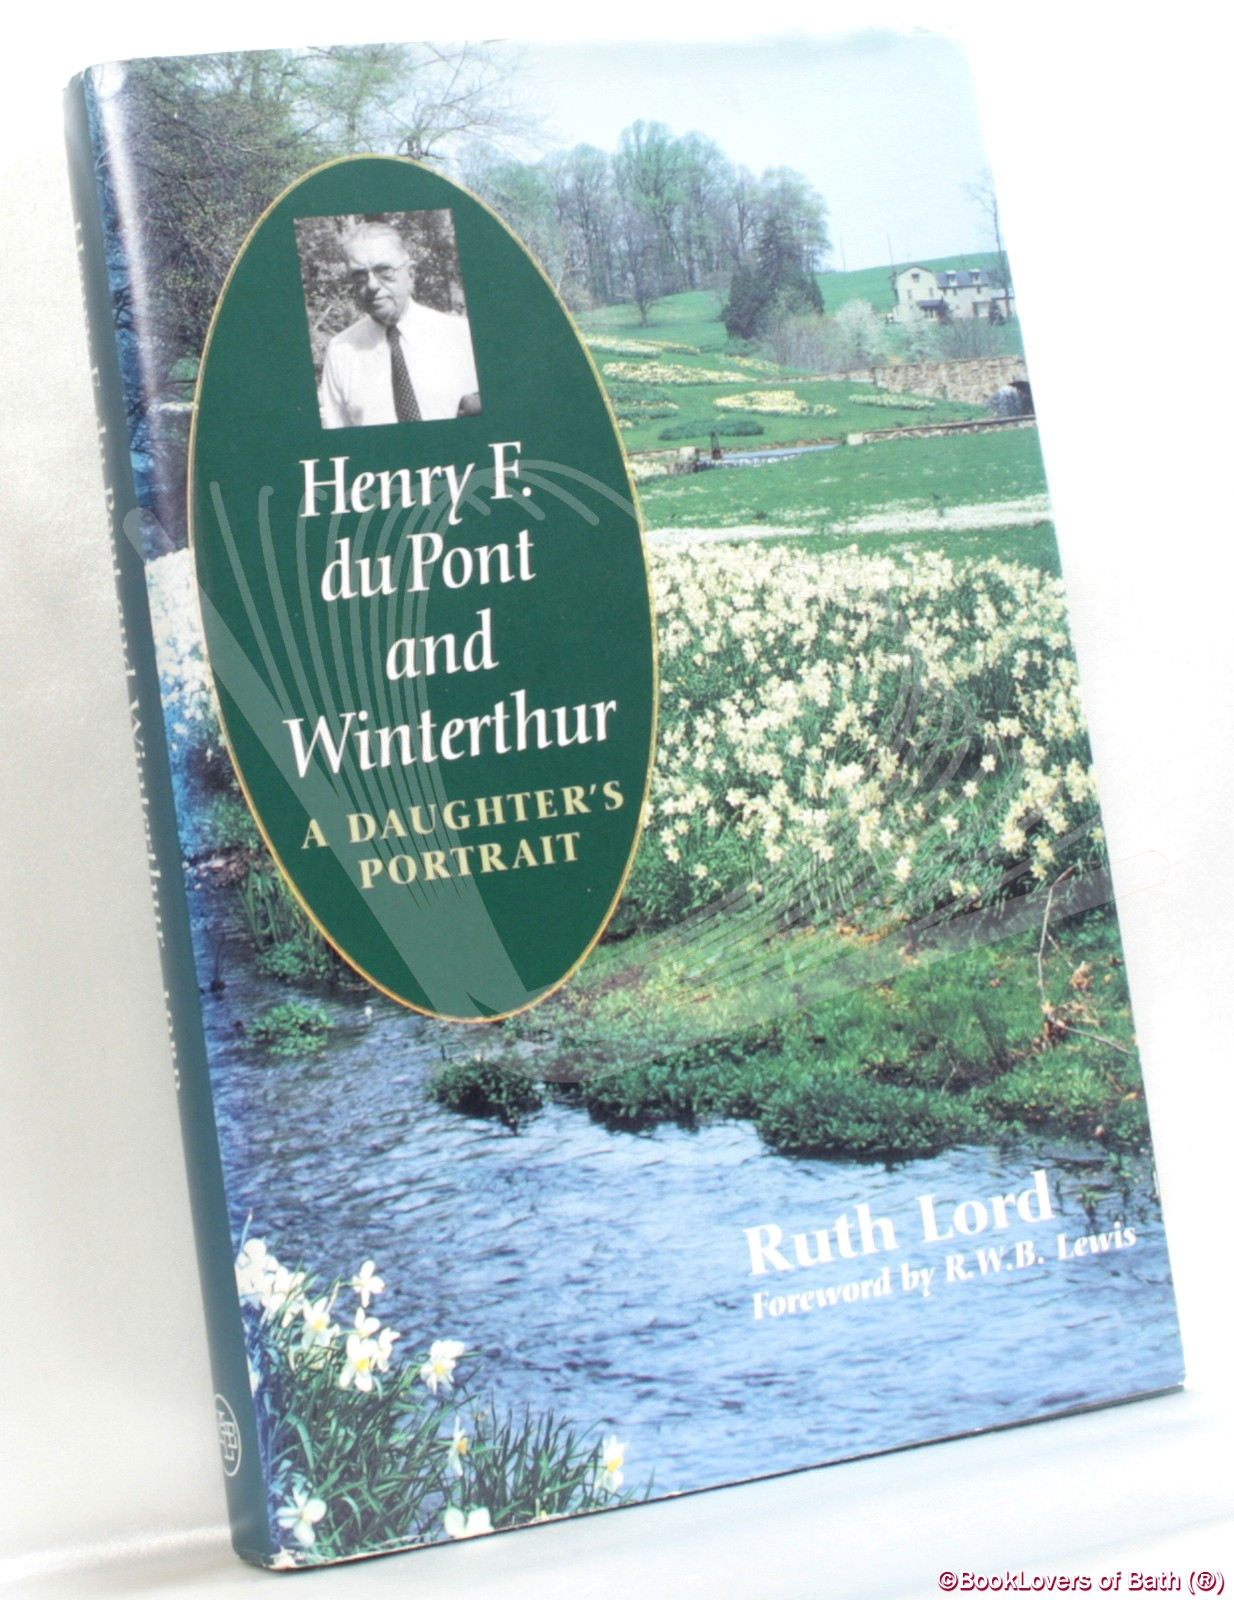 Henry F. Du Pont and Winterthur: A Daughter's Portrait - Ruth Lord